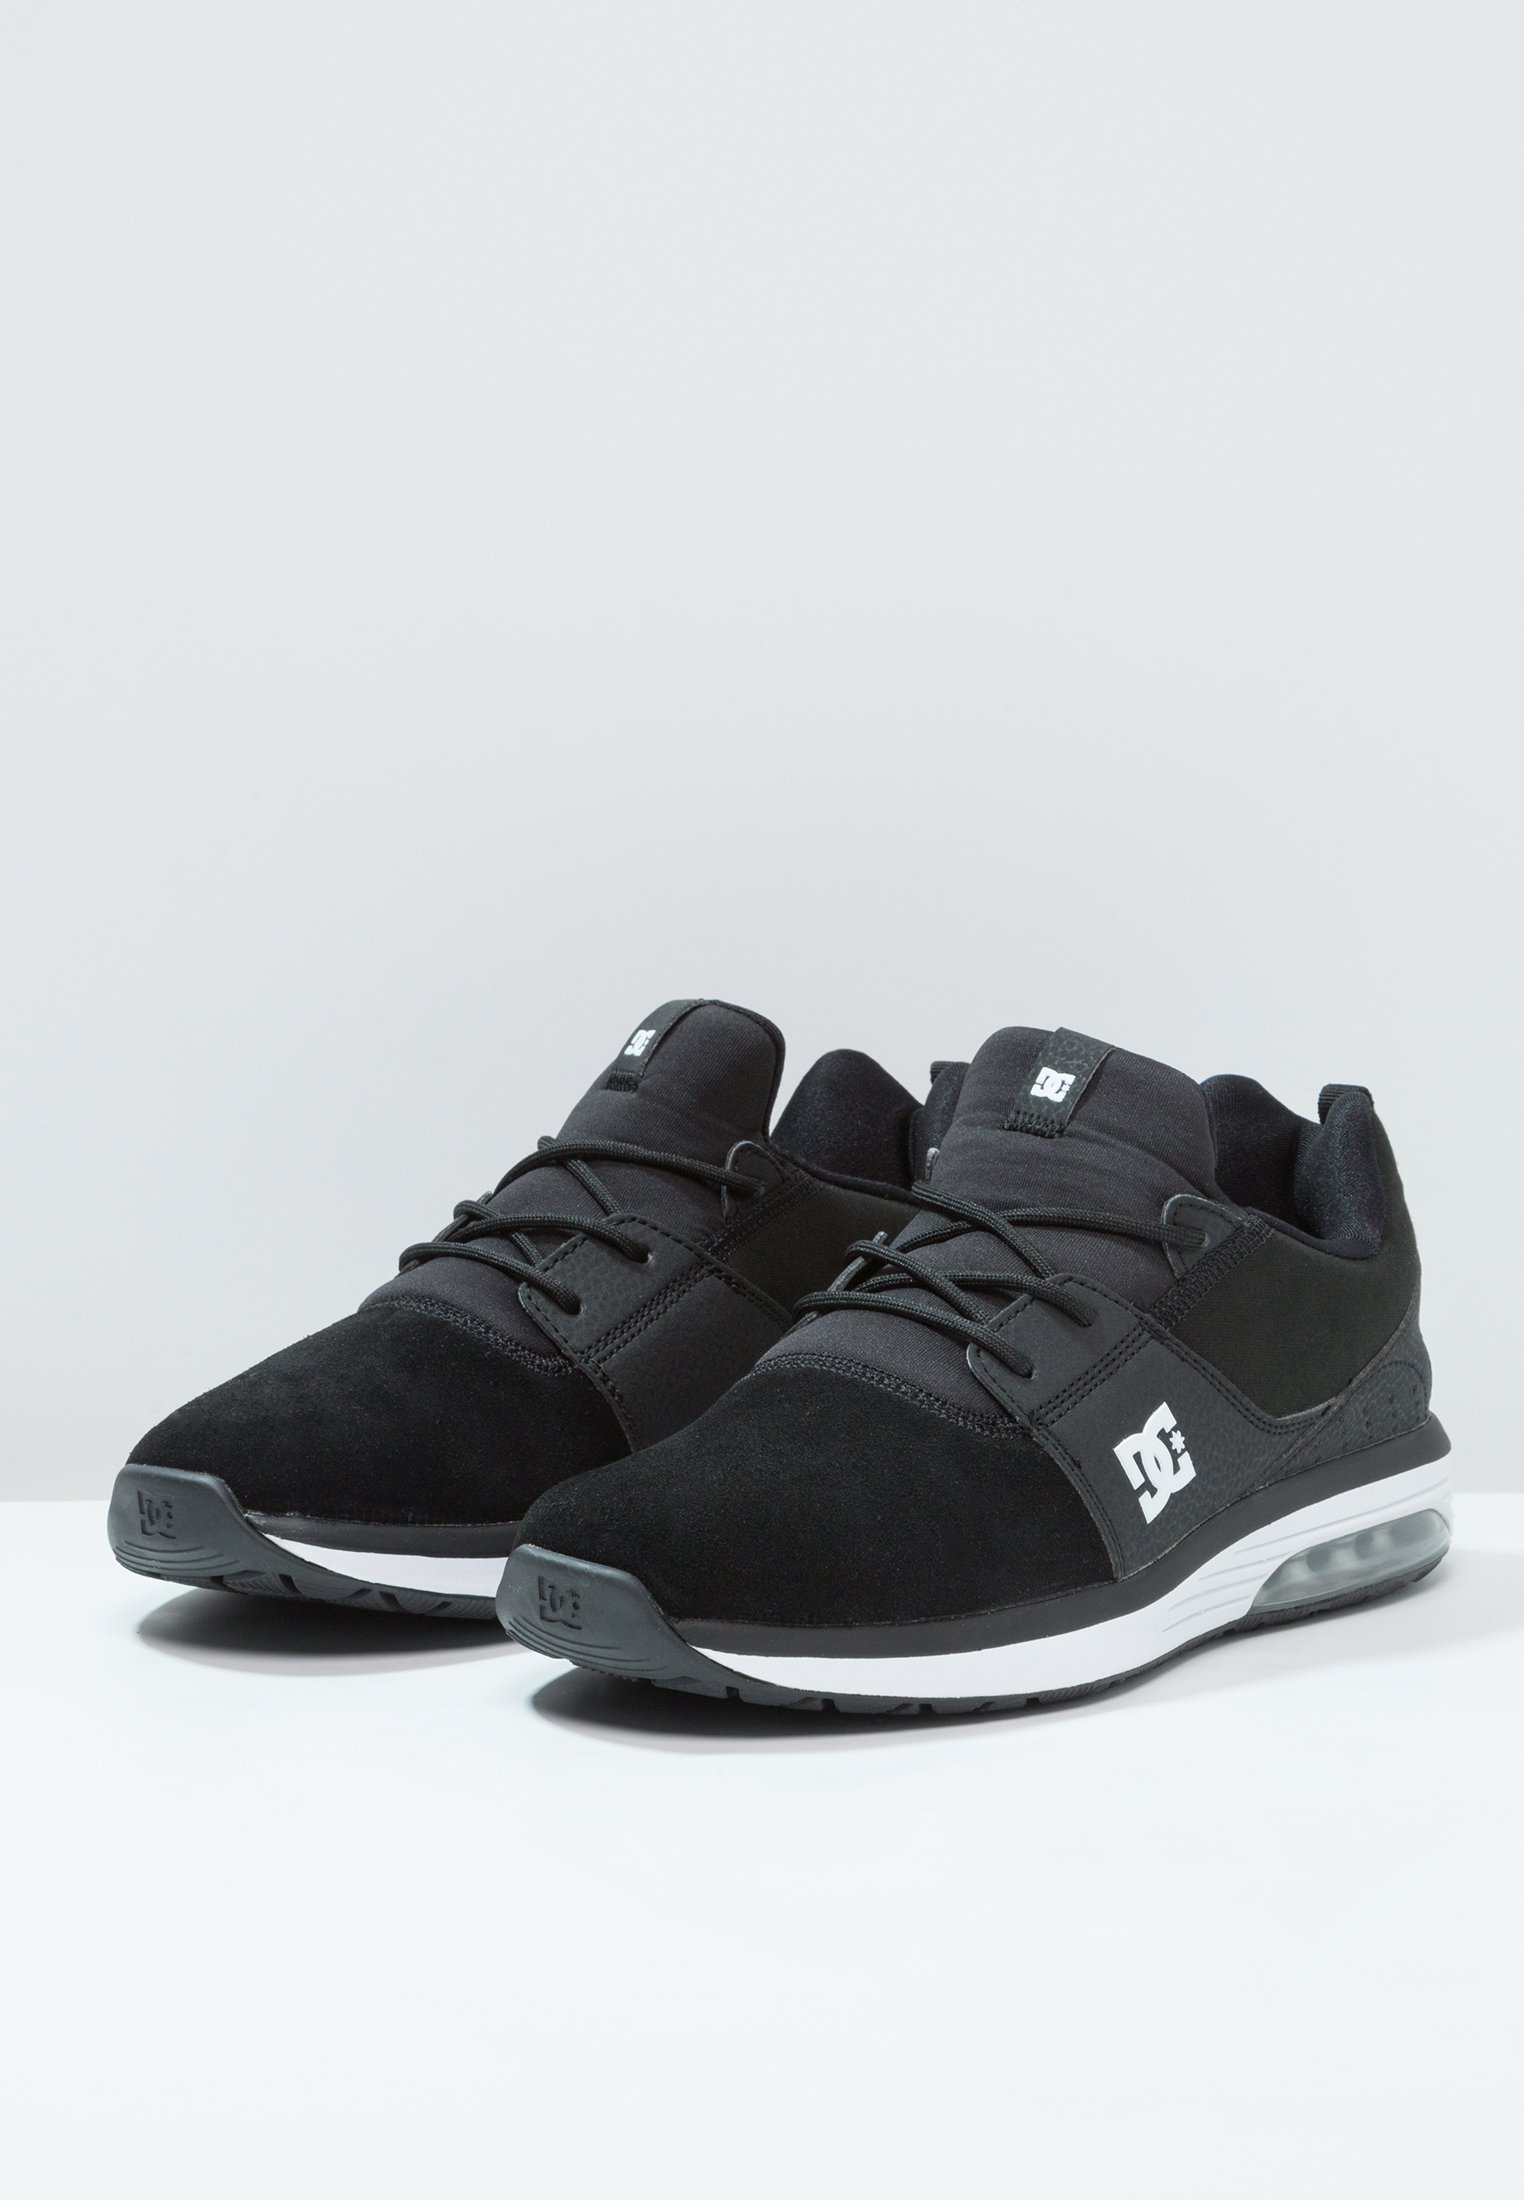 Dc Shoes Heathrow - Sneaker Low Charcoal/grey Black Friday